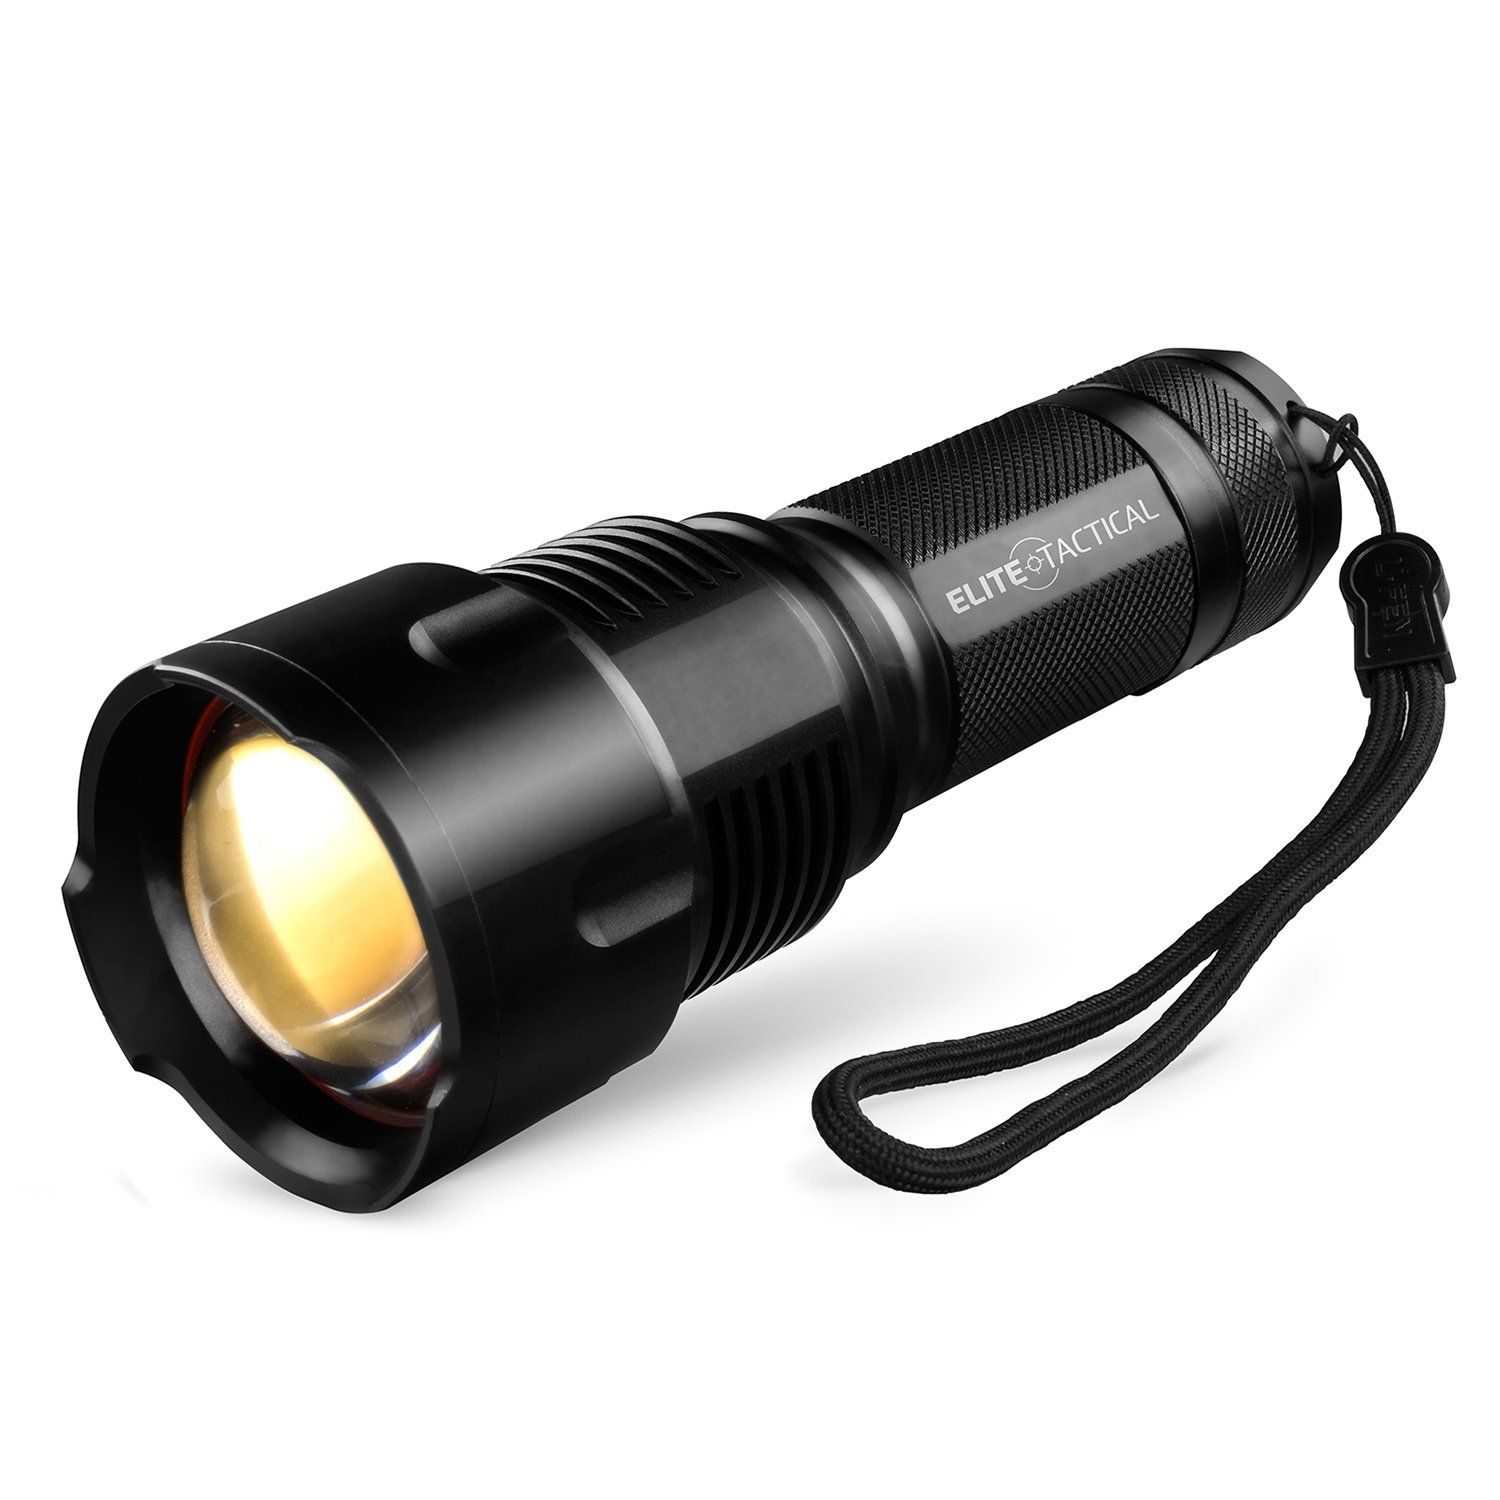 Pro 300 Series Tactical Flashlight by Elite Tactical - Waterproof 1200 Lumen CREE LED Military Grade Search Light w/ Zoom for Brightest Spot Light and Flood Light - Black